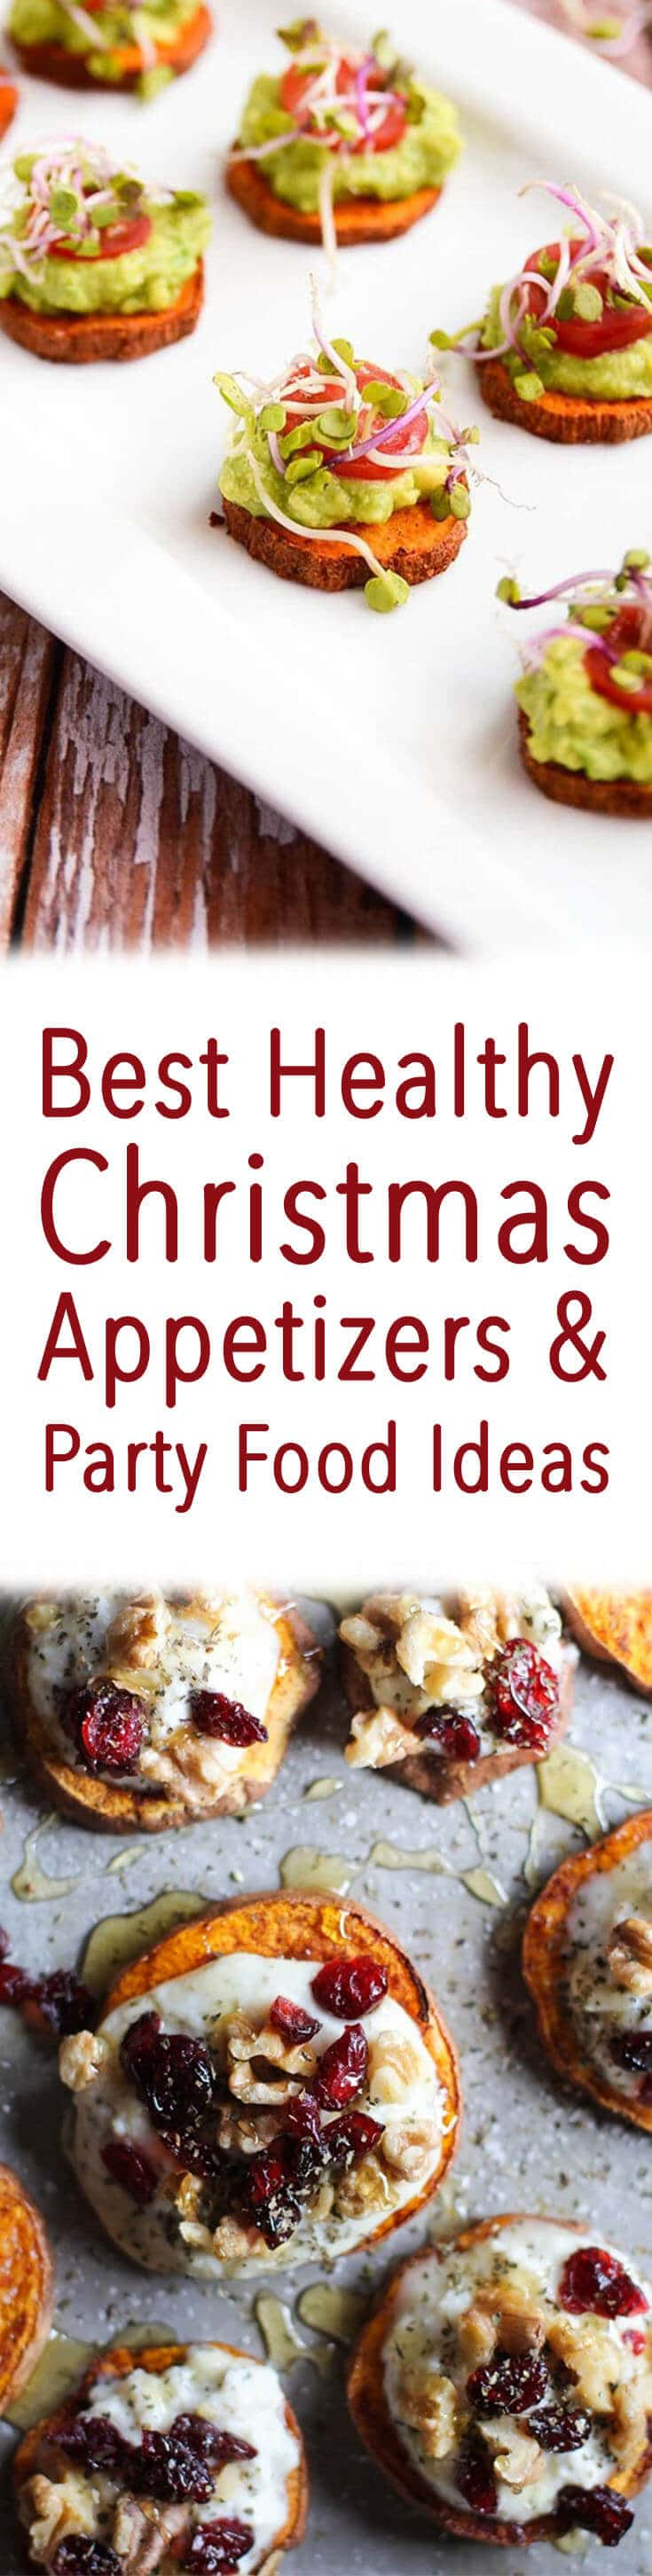 These Healthy Holiday Appetizers are my favourite picks for the festive season!